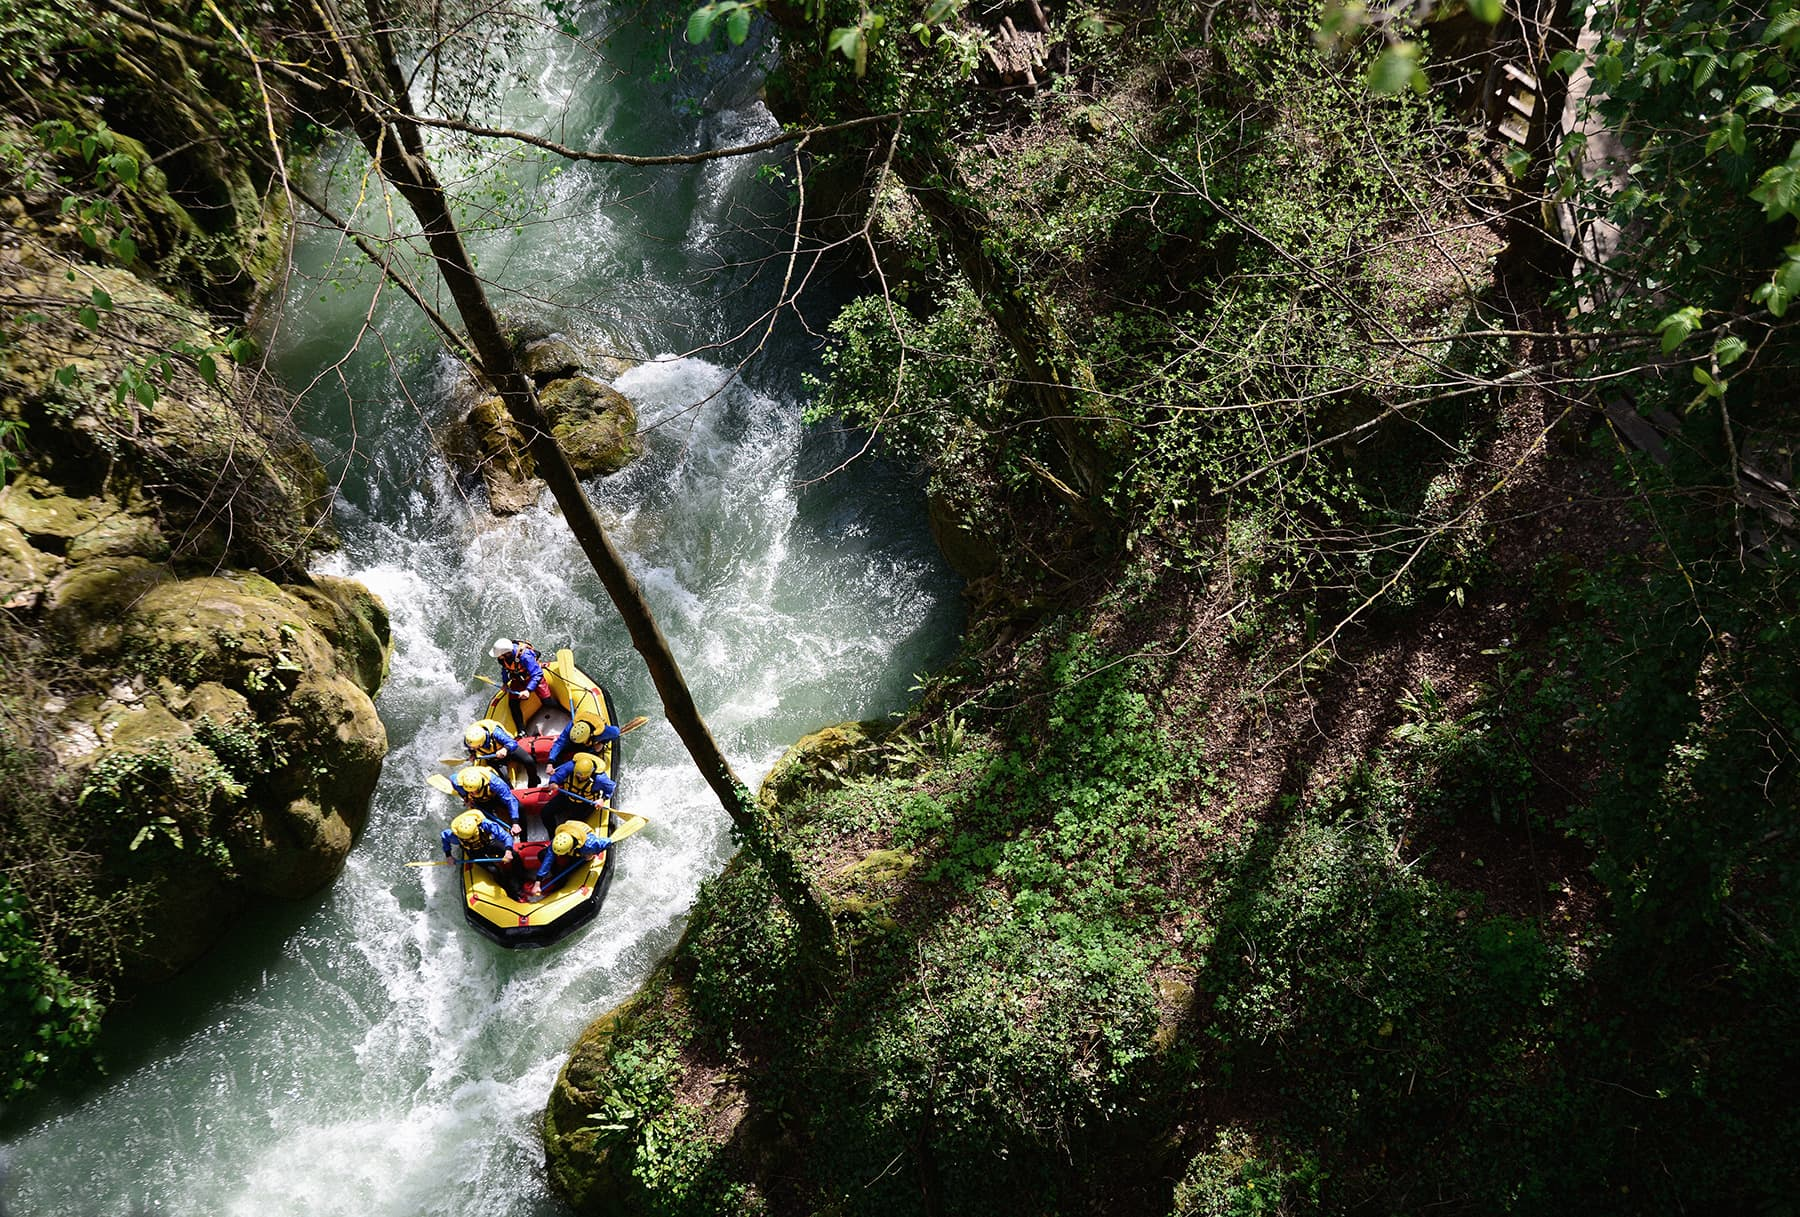 Whitewater rafting is a unique river experience in Asia